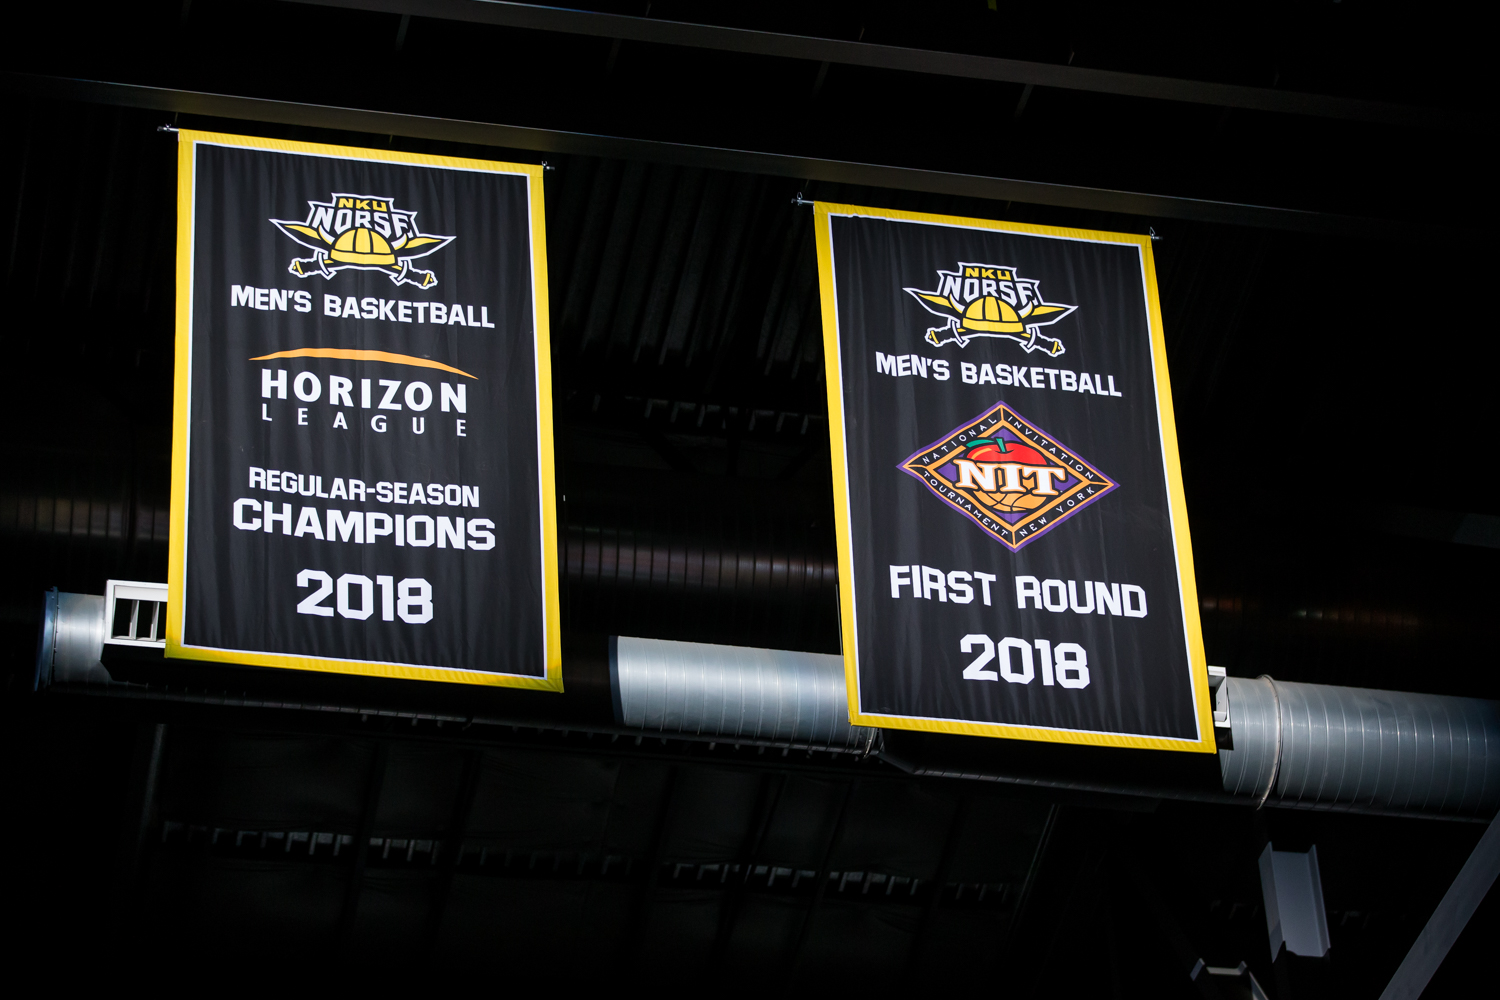 Banners+are+revealed+before+the+game+against+Wilmington.+The+banners+recognized+the+Norse+for+winning+the+Horizon+league+regular+season+as+well+as+their+appearance+in+the+NIT+Tournament.